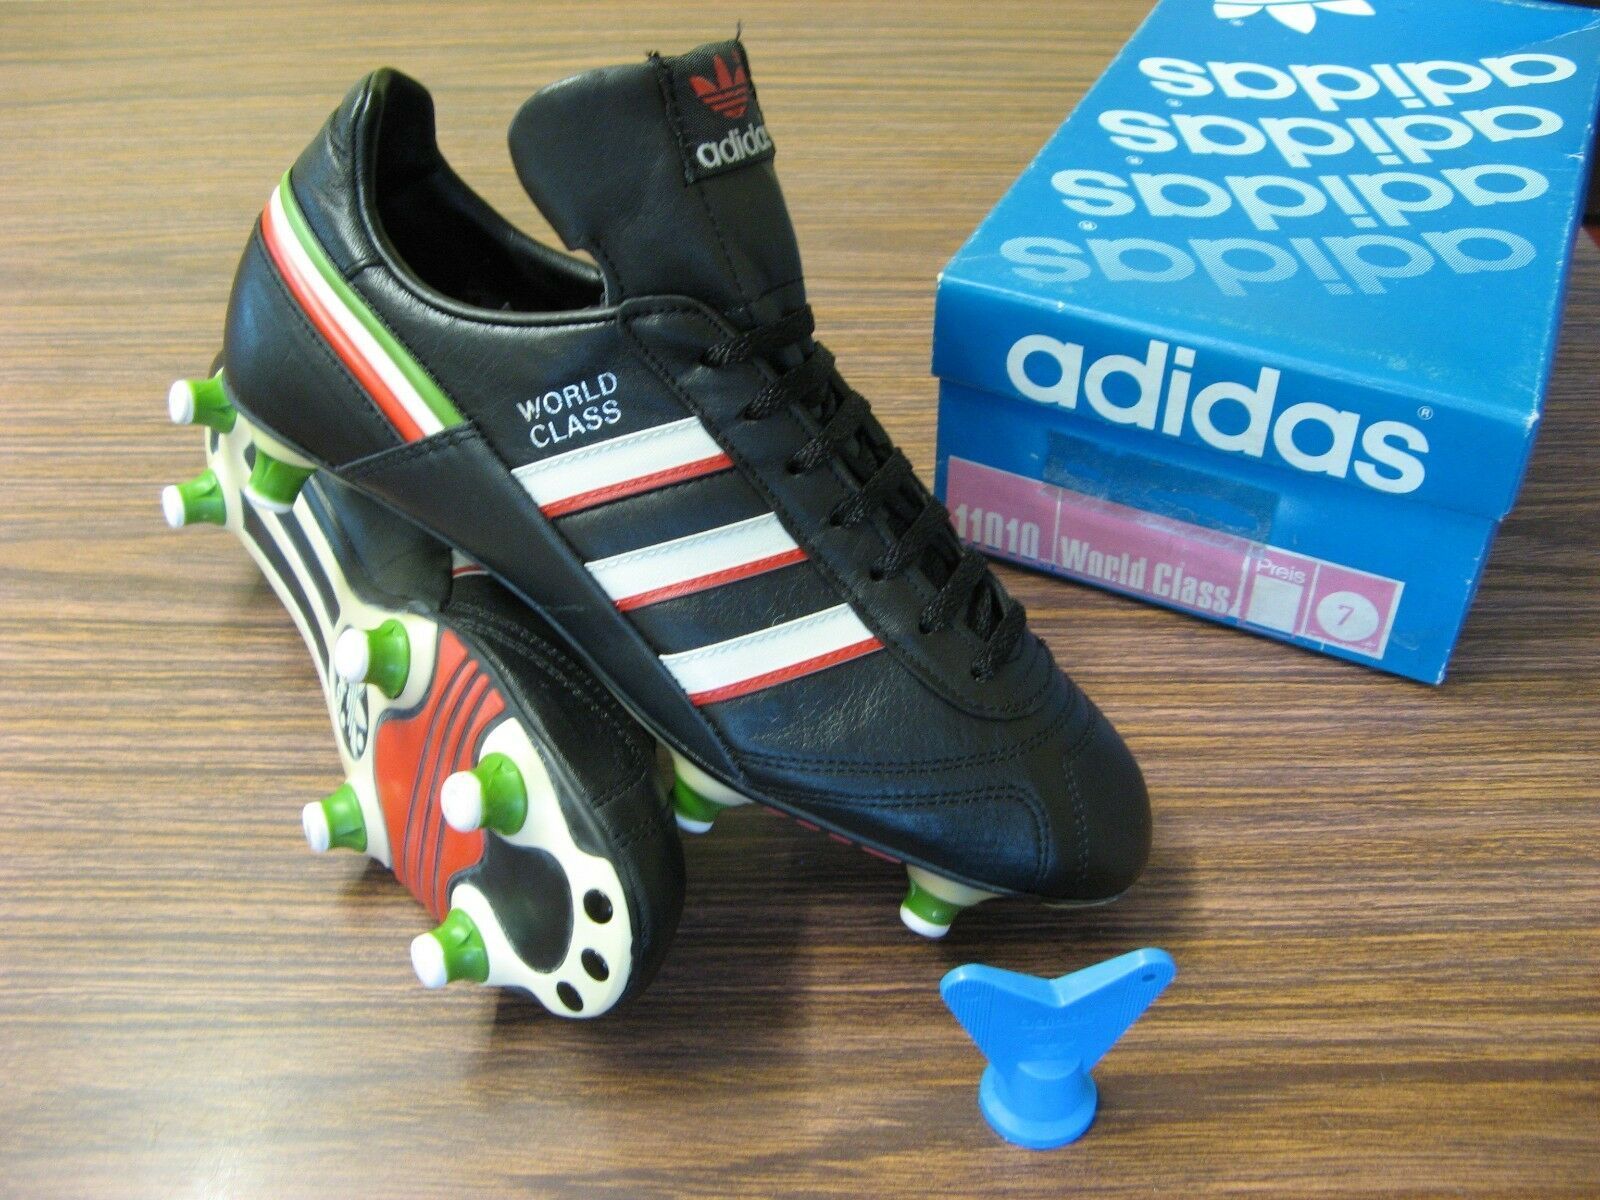 Vintage 1980 S Adidas World Class Football Boots Bnib Deadstock 1986 World Cup Ebay Football Boots Adidas Football